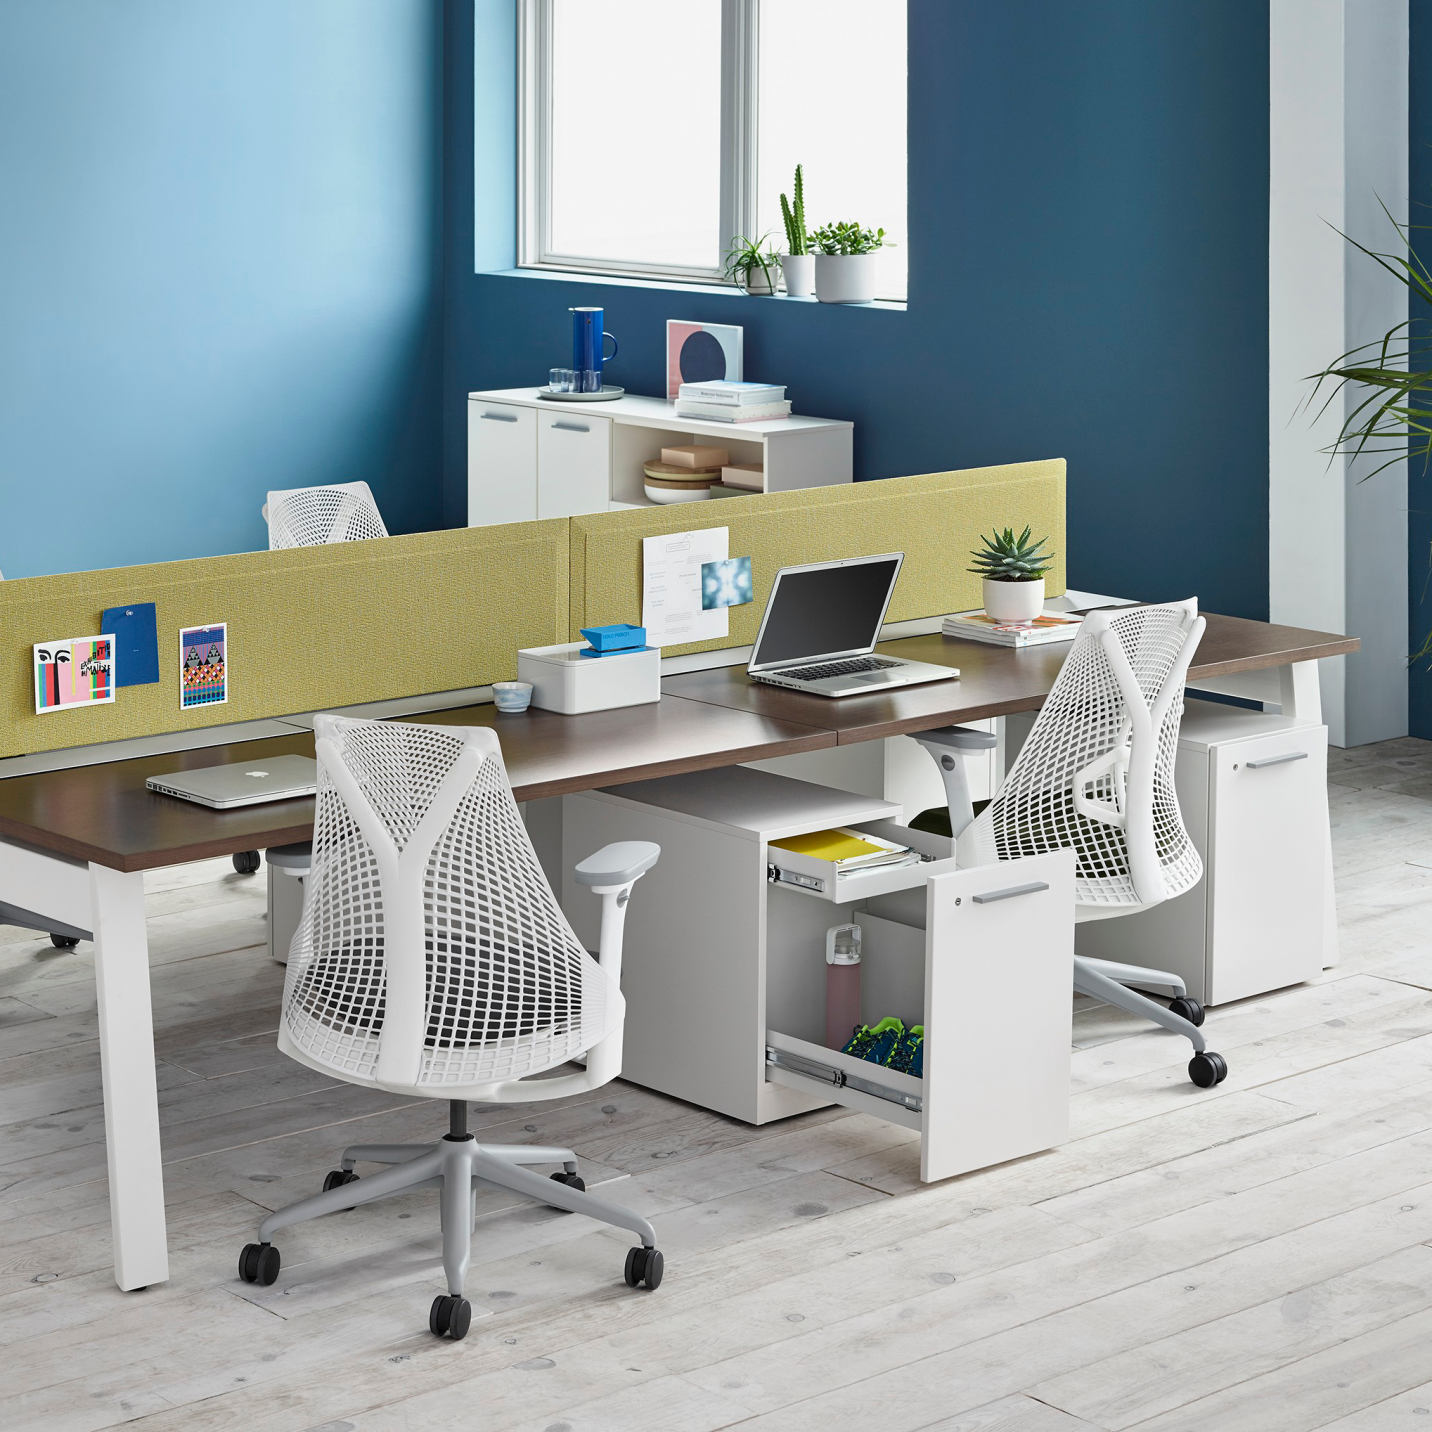 Herman Miller Office Furniture   Large Home Office Furniture Check More At  Http://